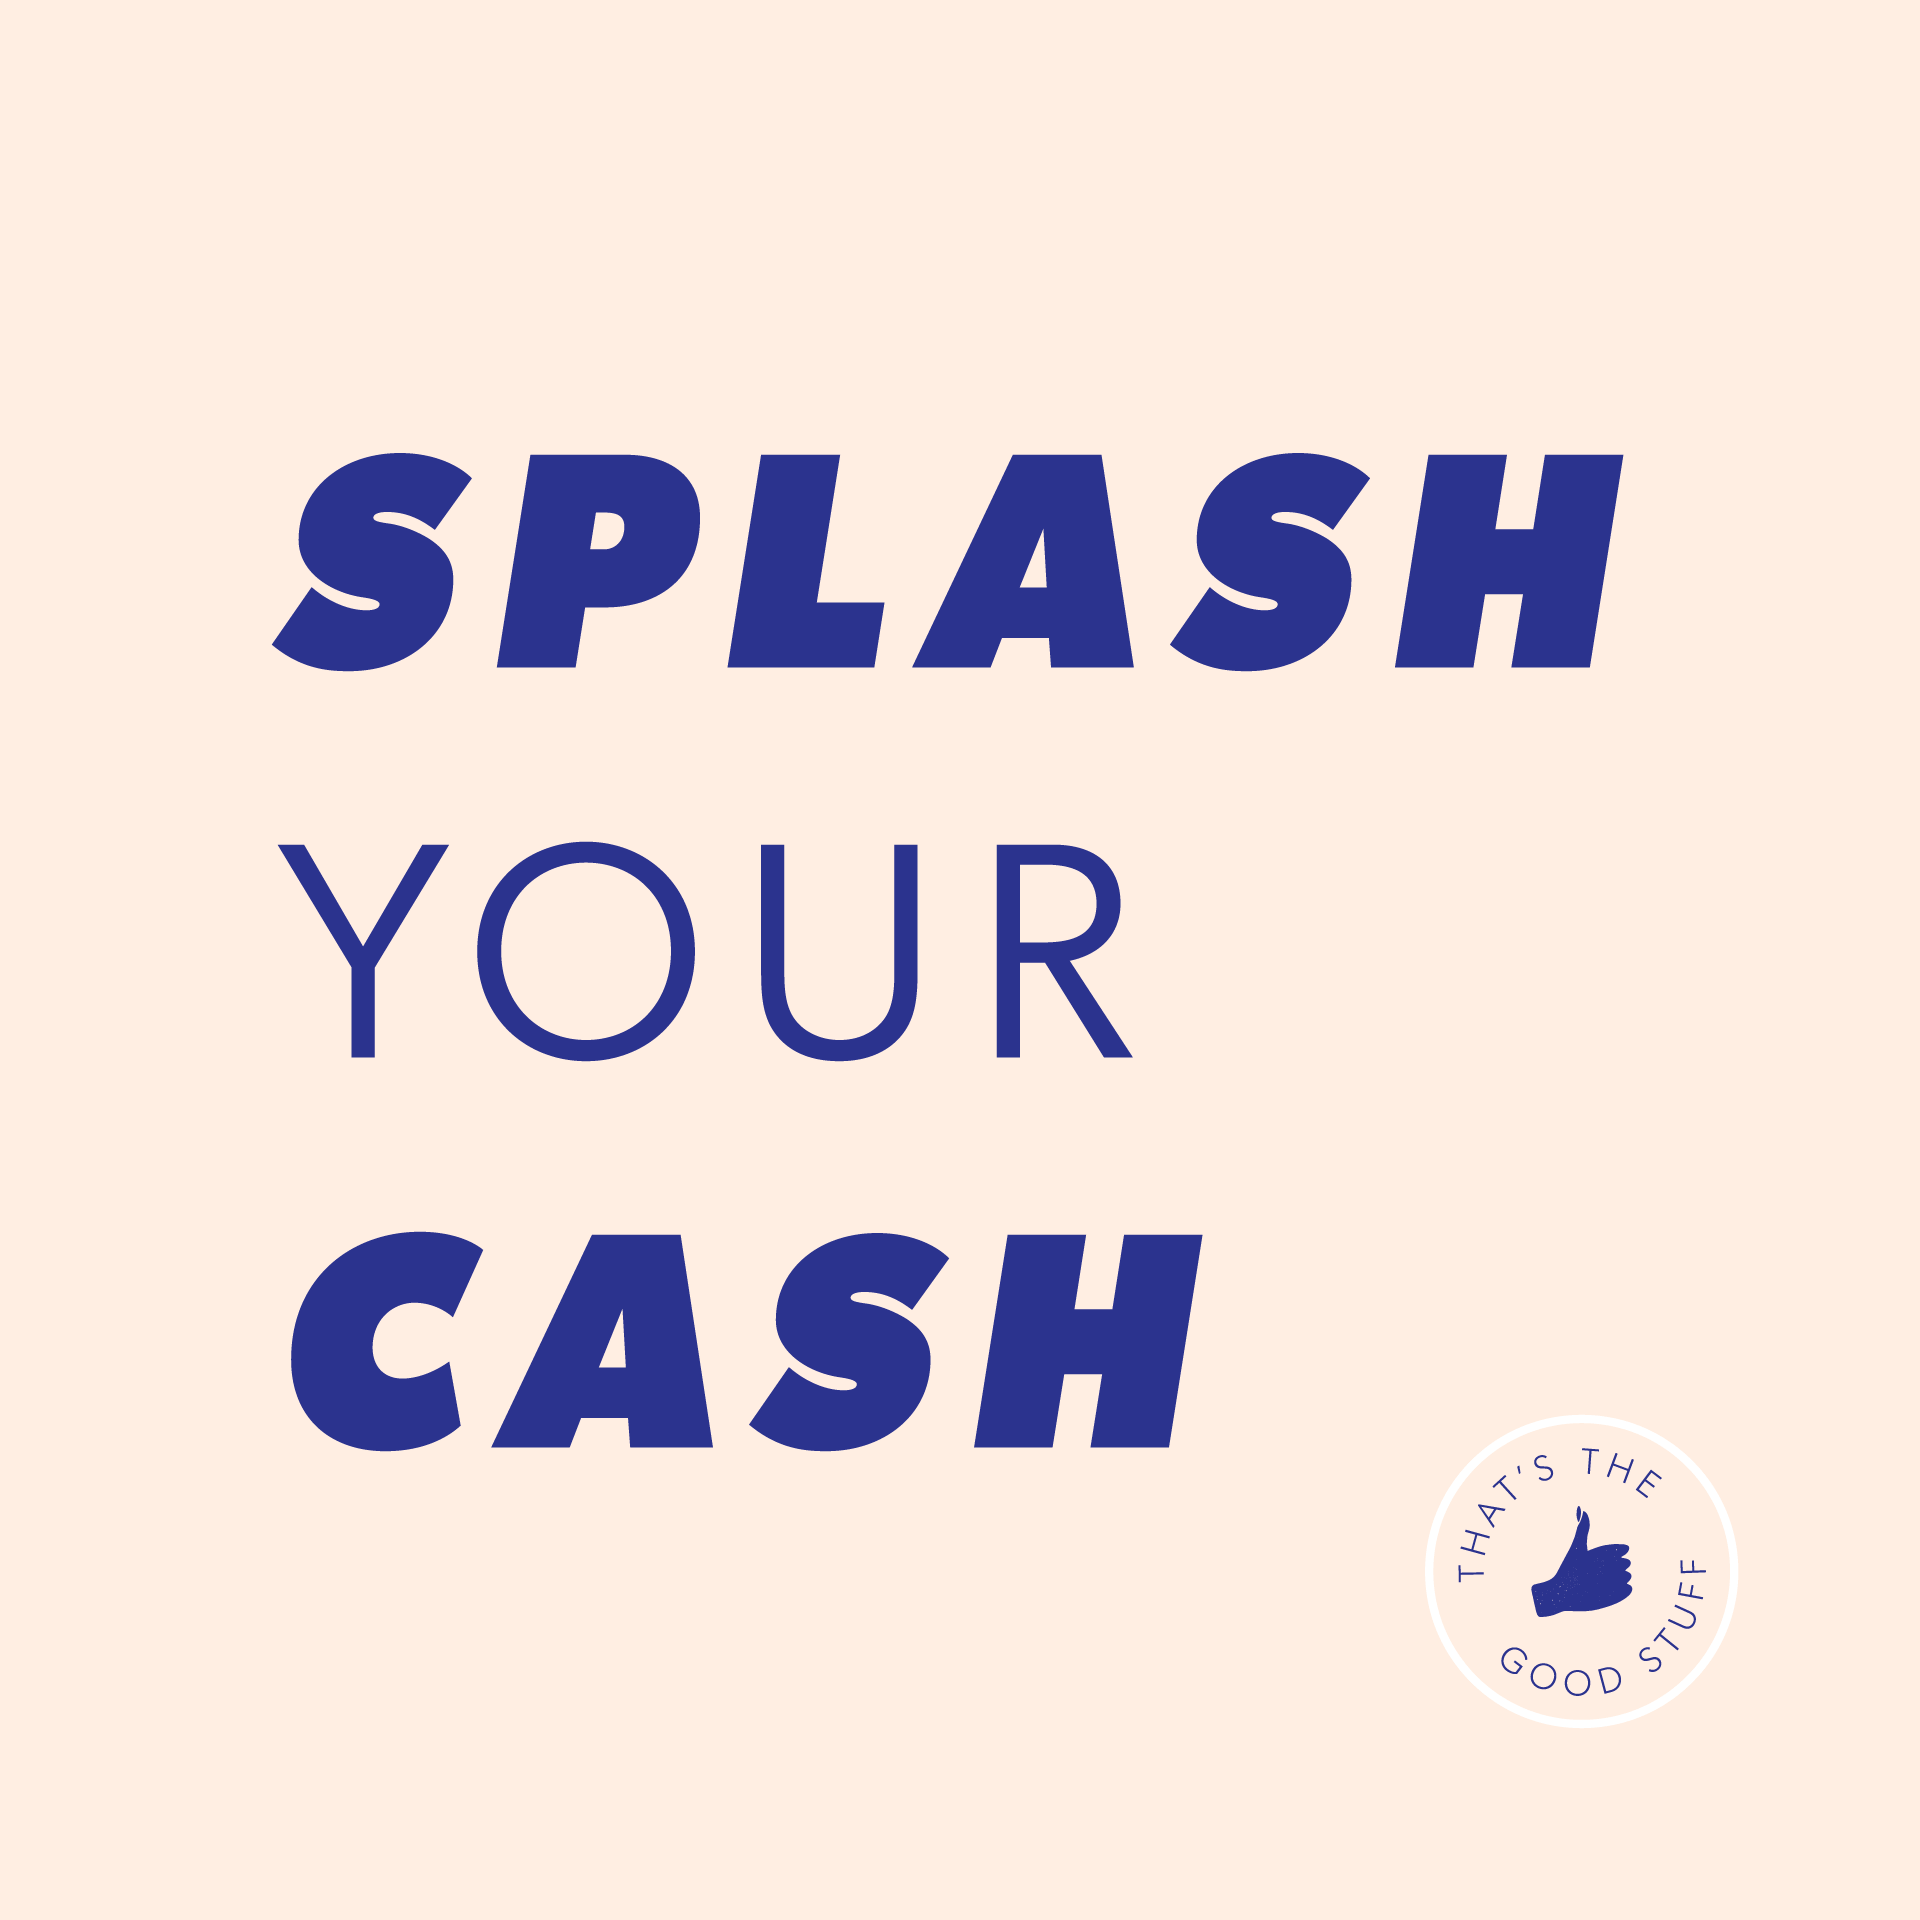 Splash Your Cash